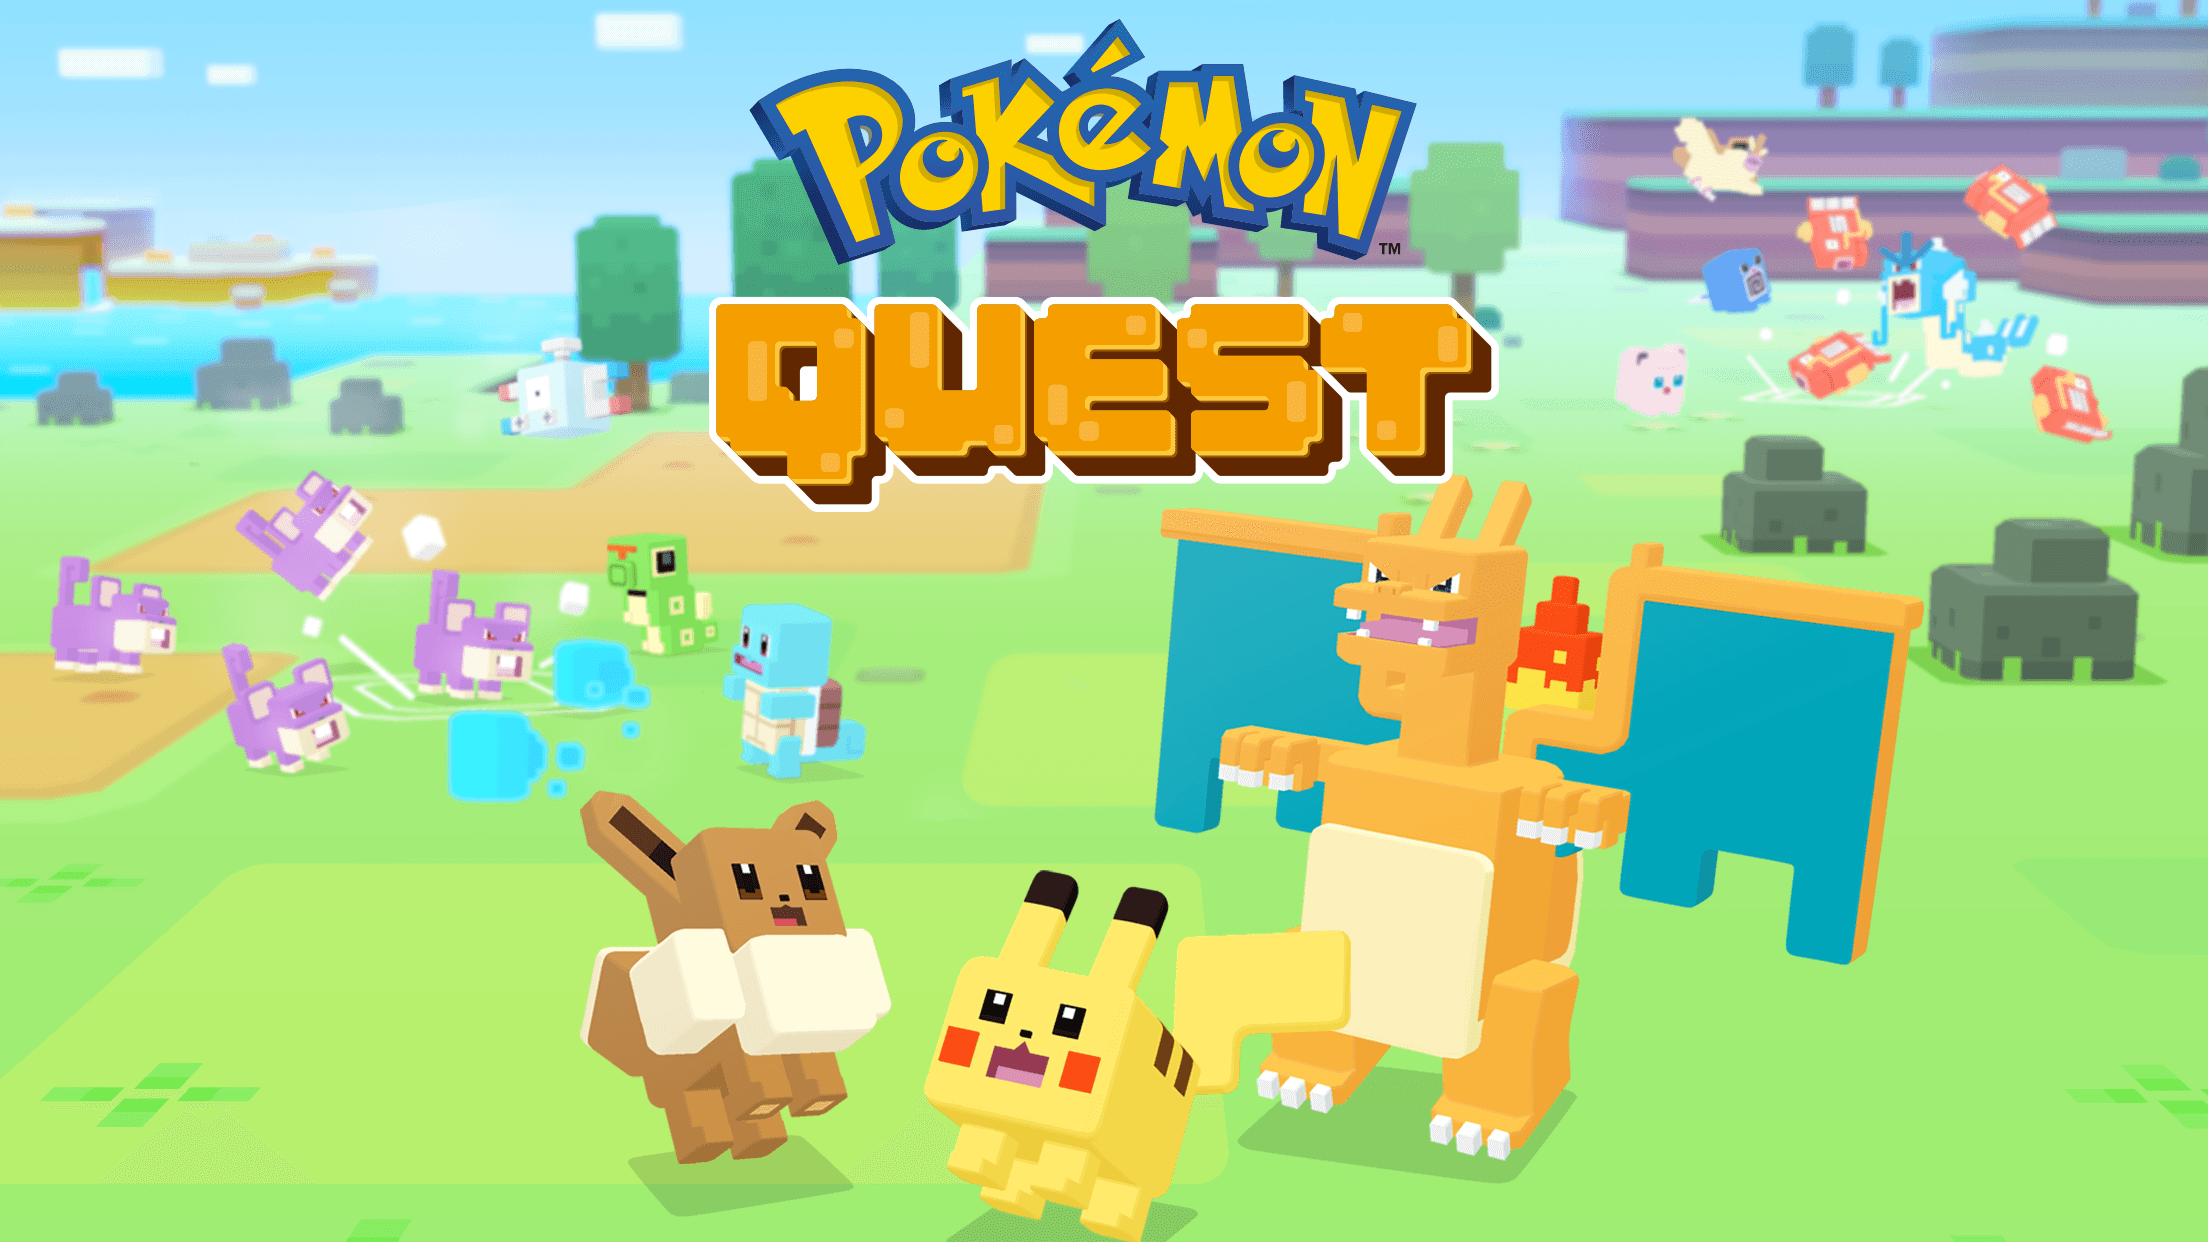 Download Pokemon Quest on PC with BlueStacks